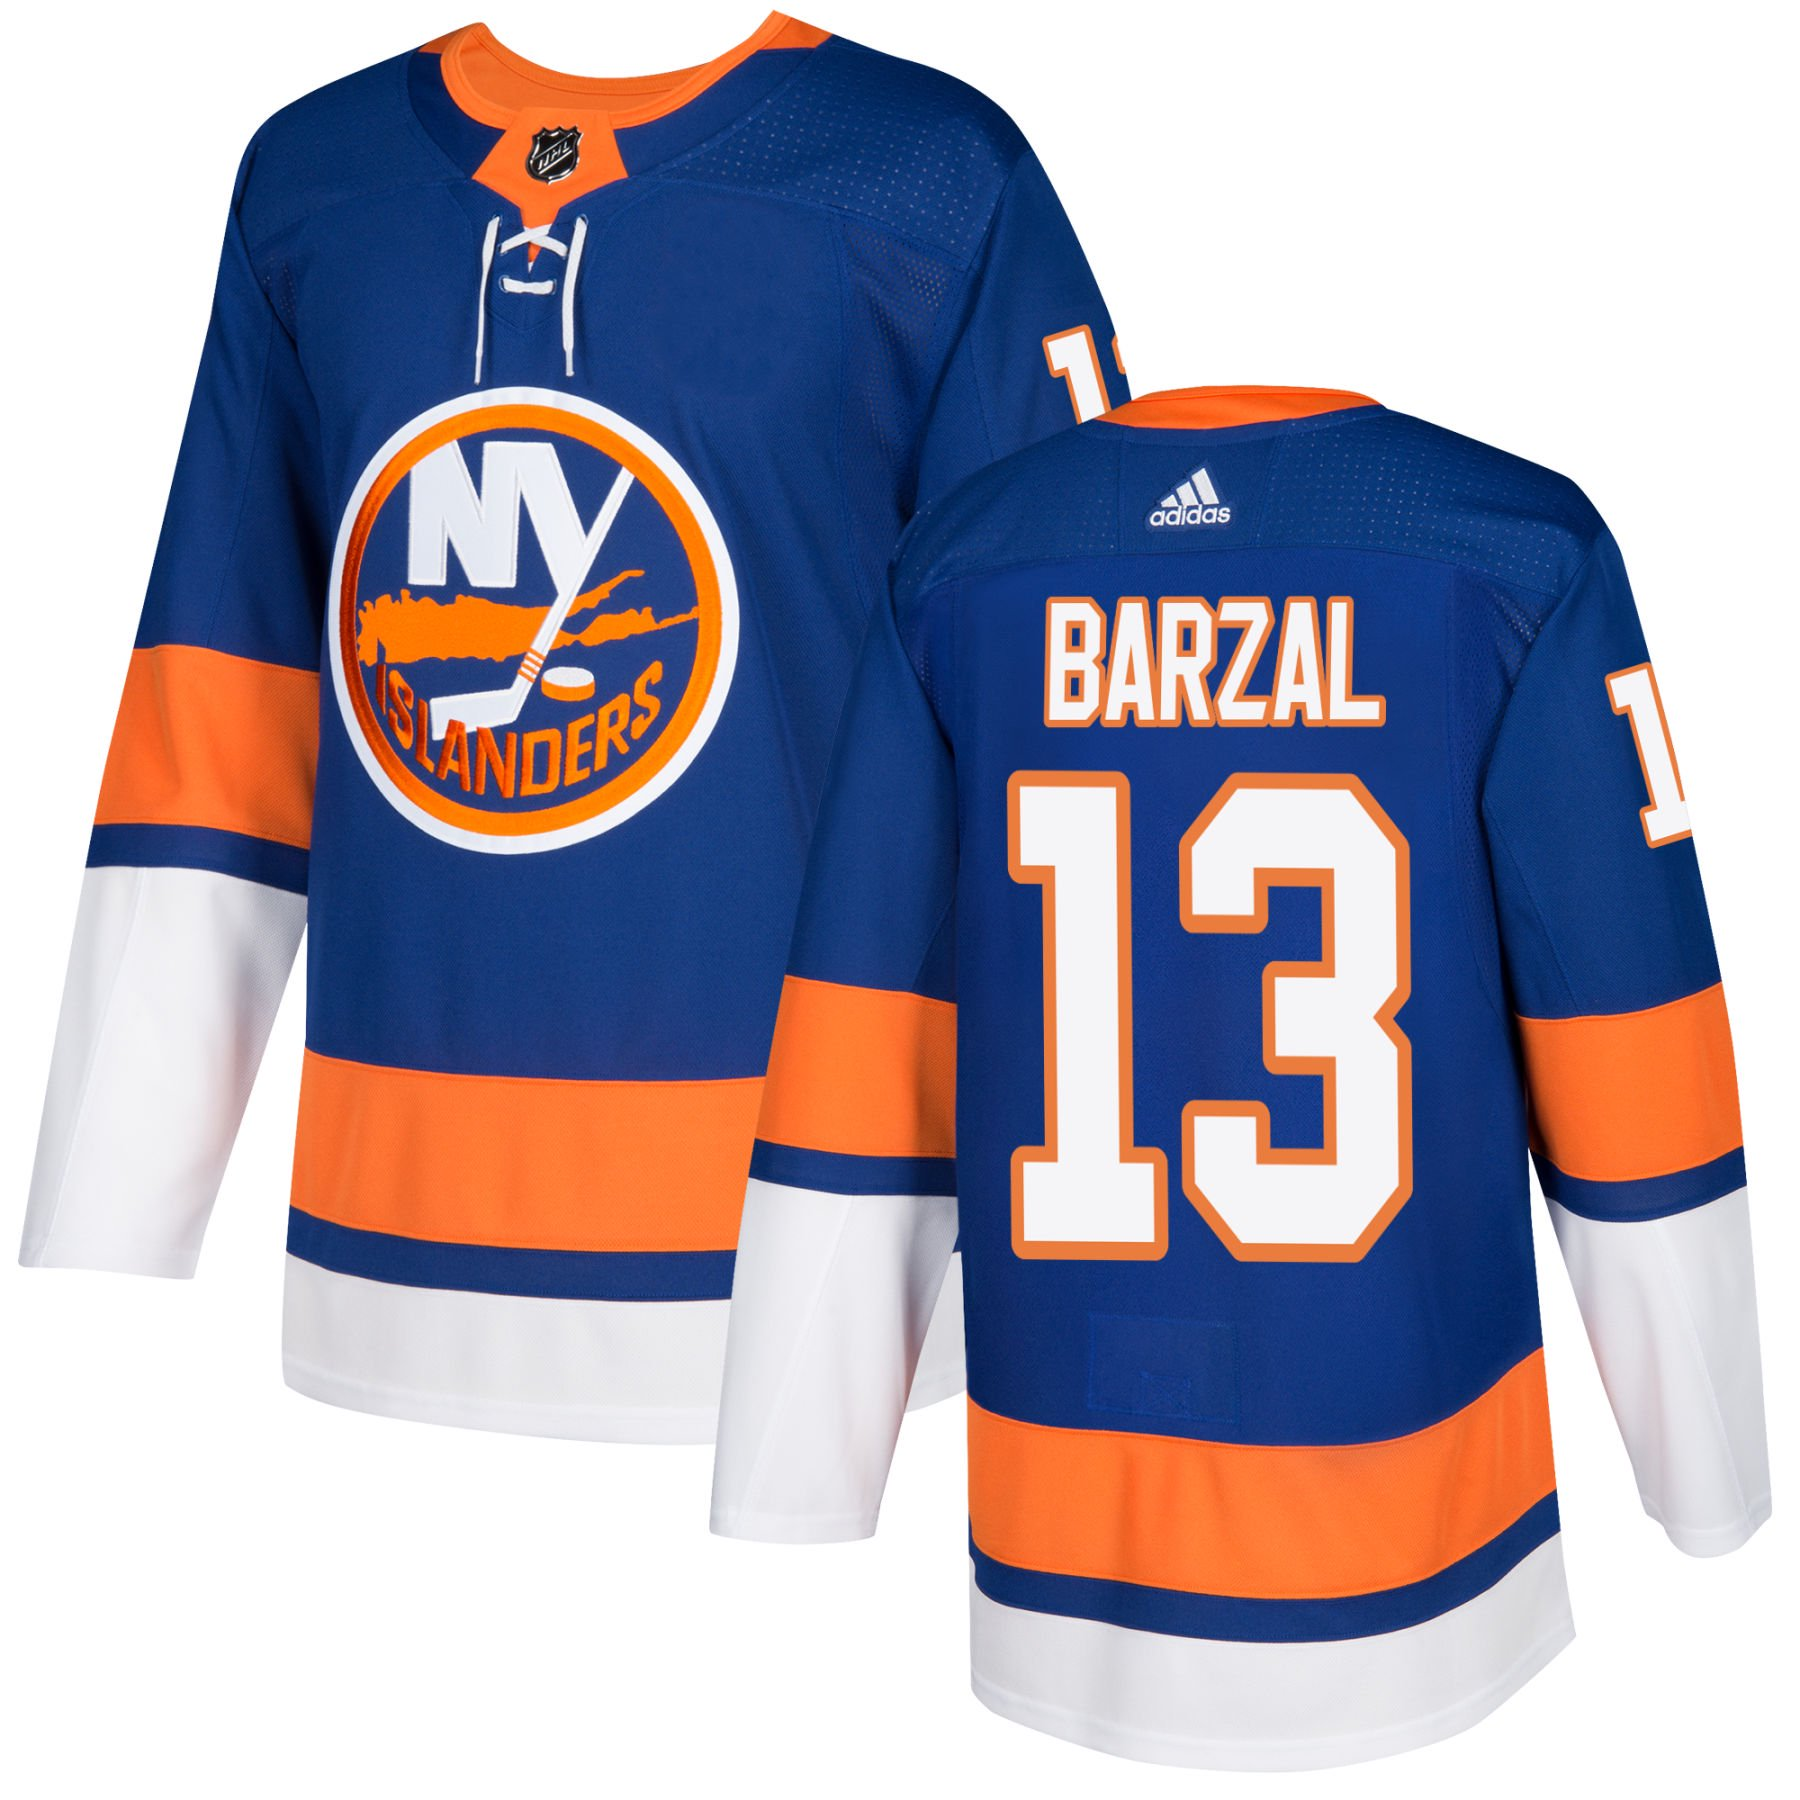 Islanders - York Nhl Jersey Barzal New Mathew Adidas Authentic Pro Stitched Home